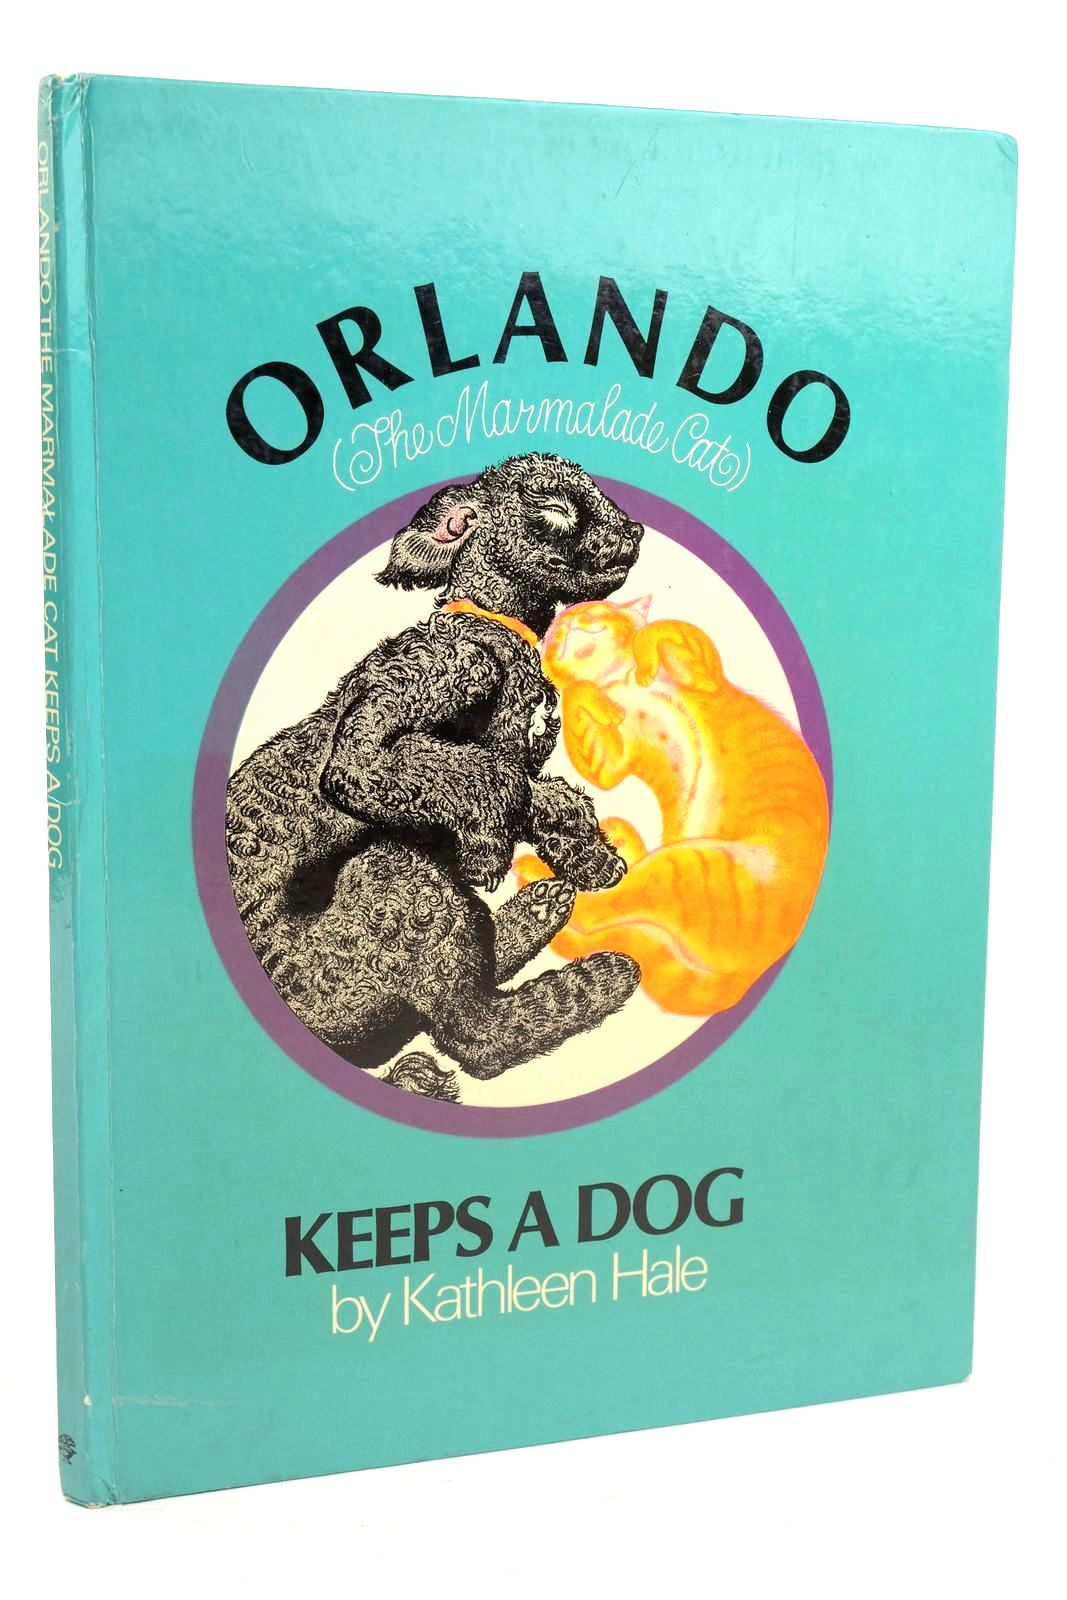 Photo of ORLANDO (THE MARMALADE CAT) KEEPS A DOG written by Hale, Kathleen illustrated by Hale, Kathleen published by Jonathan Cape (STOCK CODE: 1319979)  for sale by Stella & Rose's Books